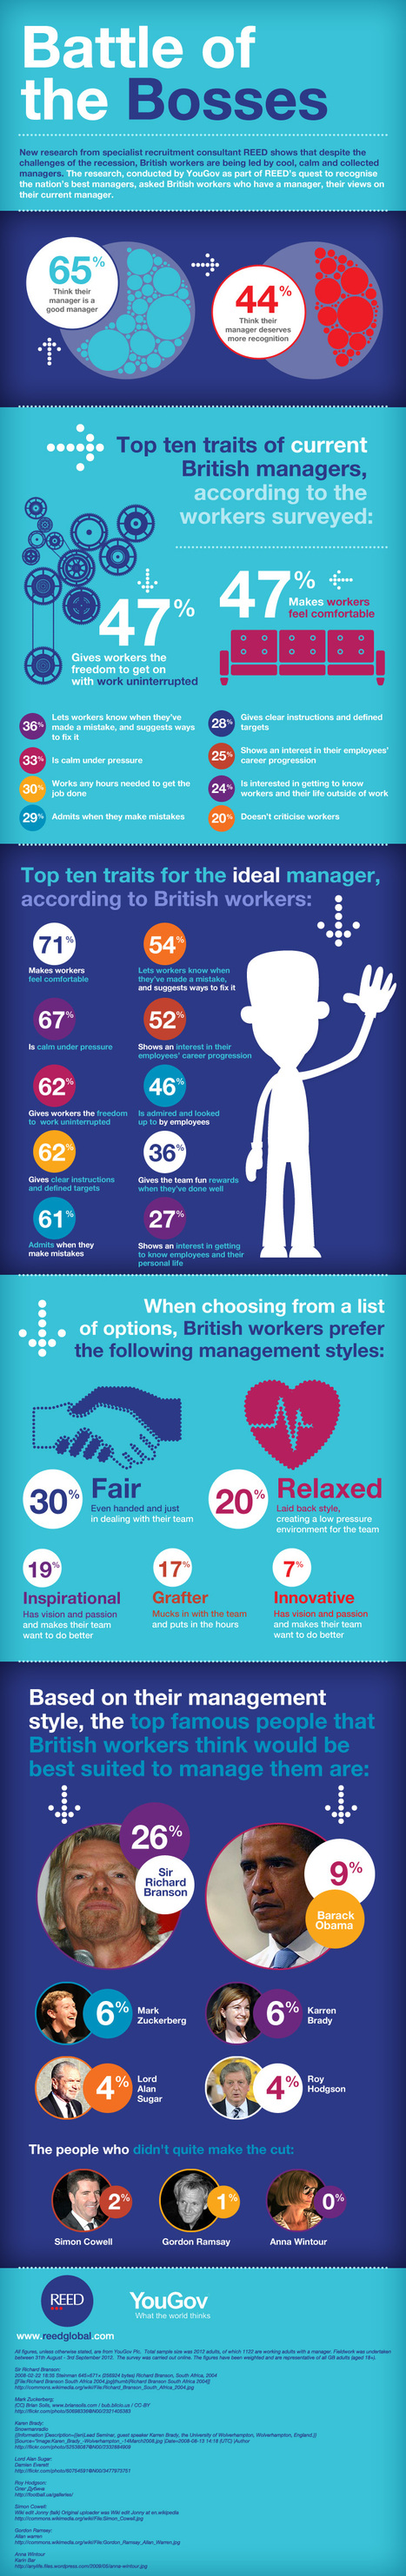 HR Infographics: Battle of the Bosses | Management Matters - Leadership is learning | Scoop.it